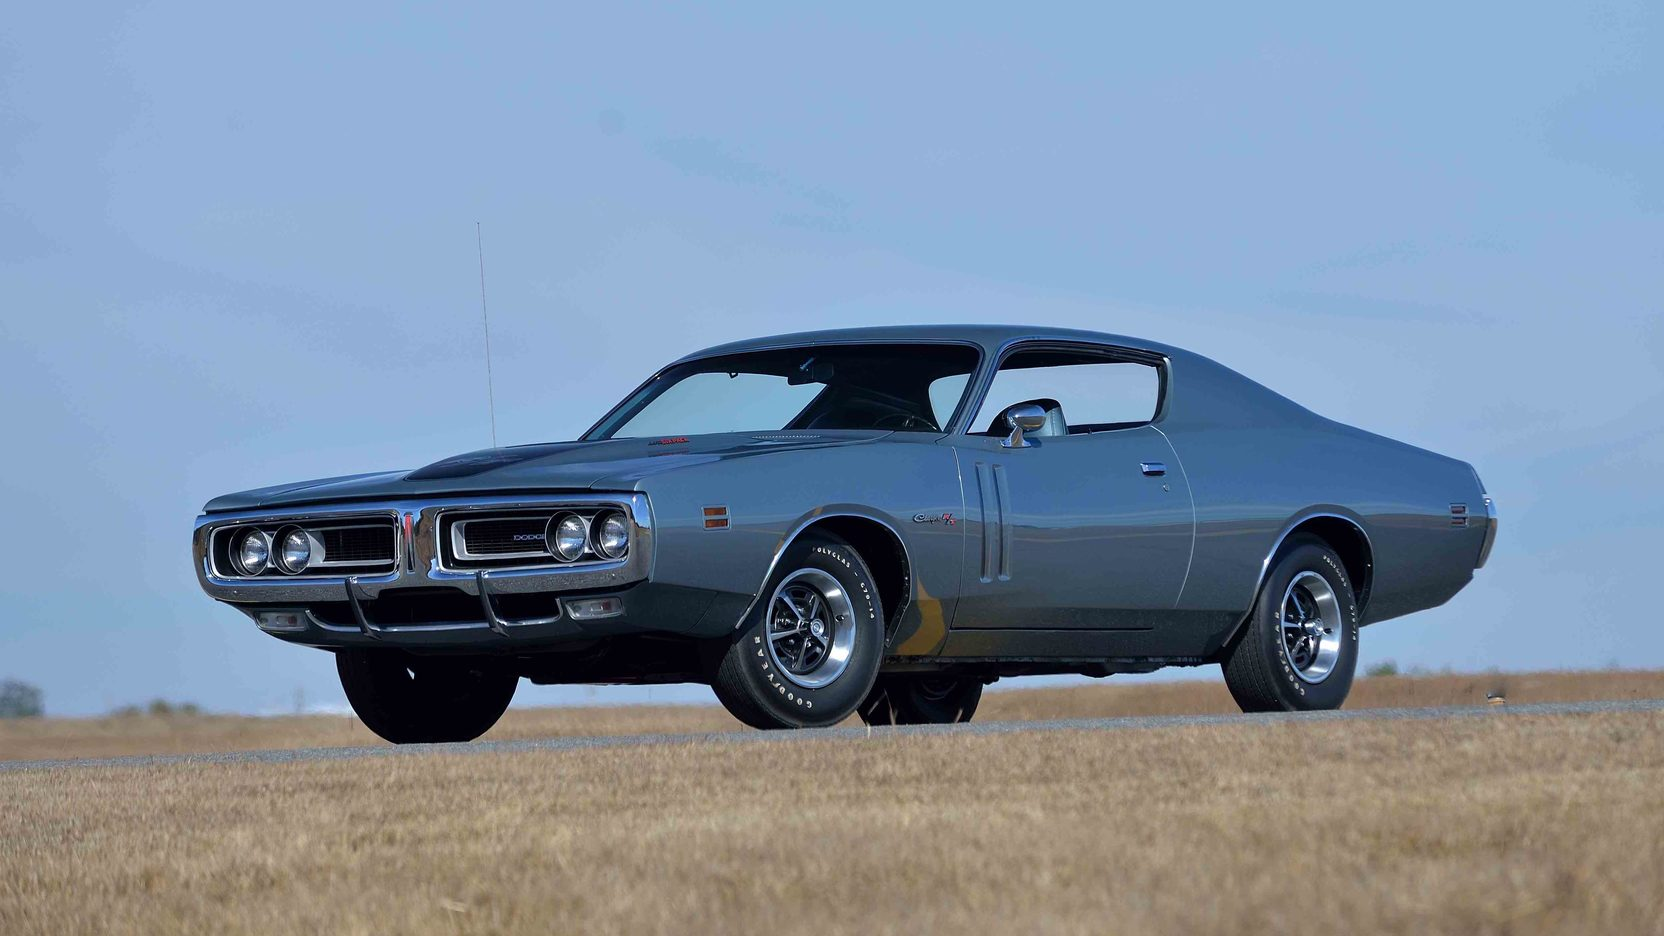 1971 Dodge Charger R/T 440 Six-pack